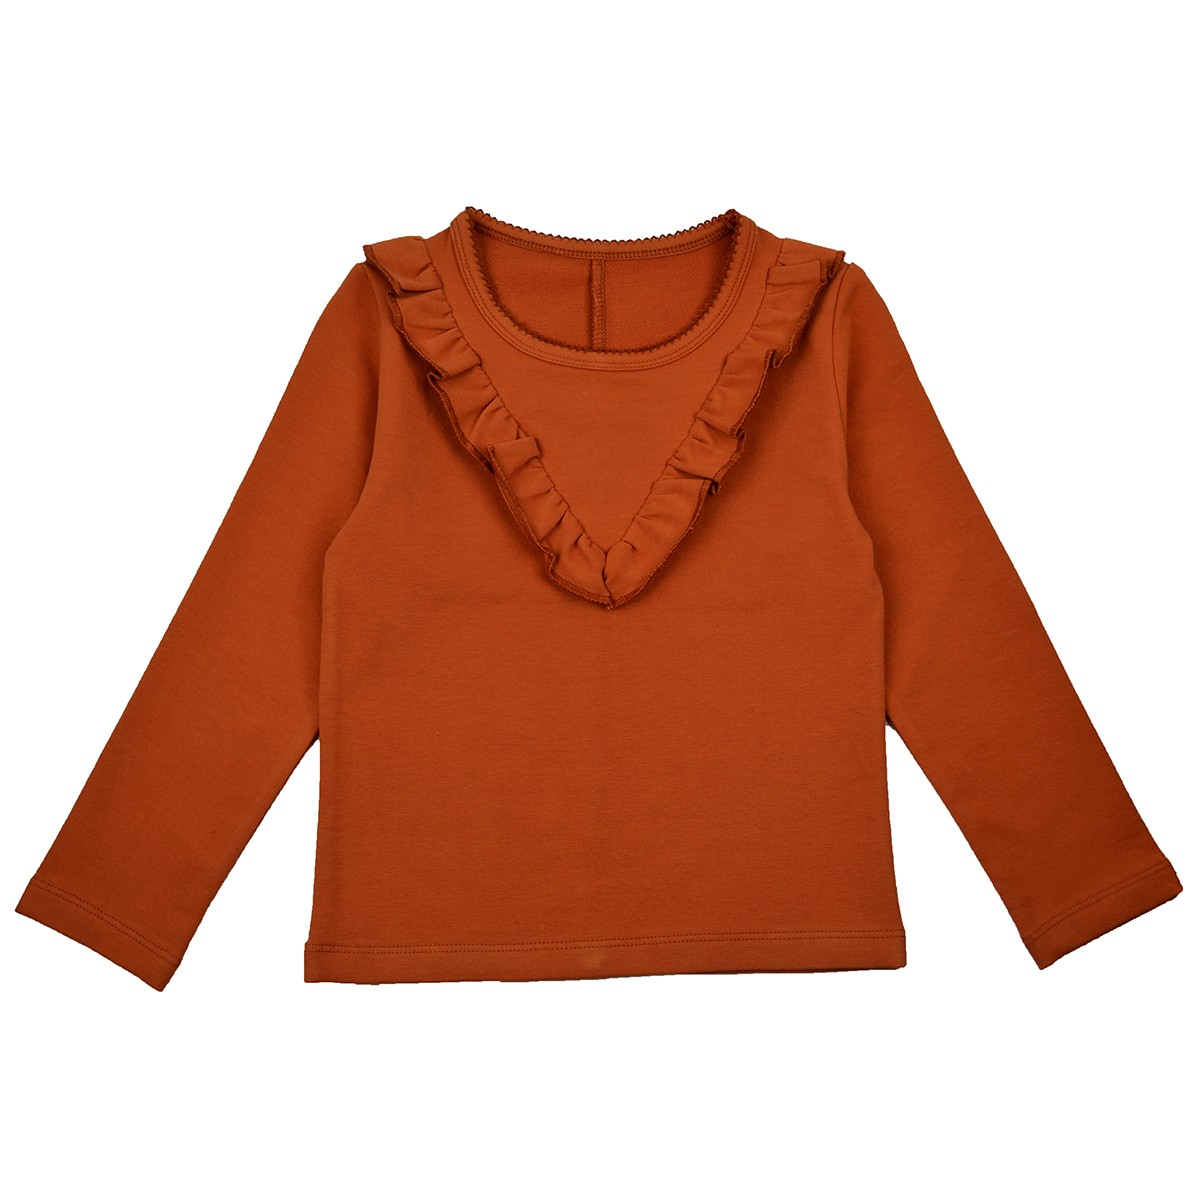 Ruffle blouse autumn